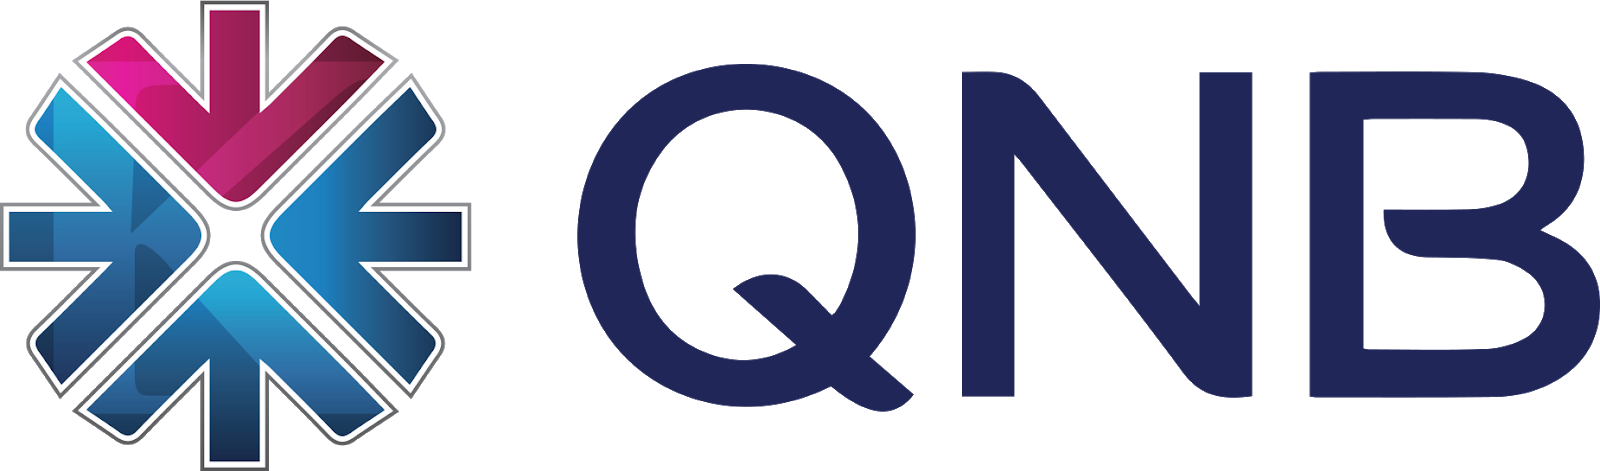 Qnb Qatar National Bank Indonesia Logo